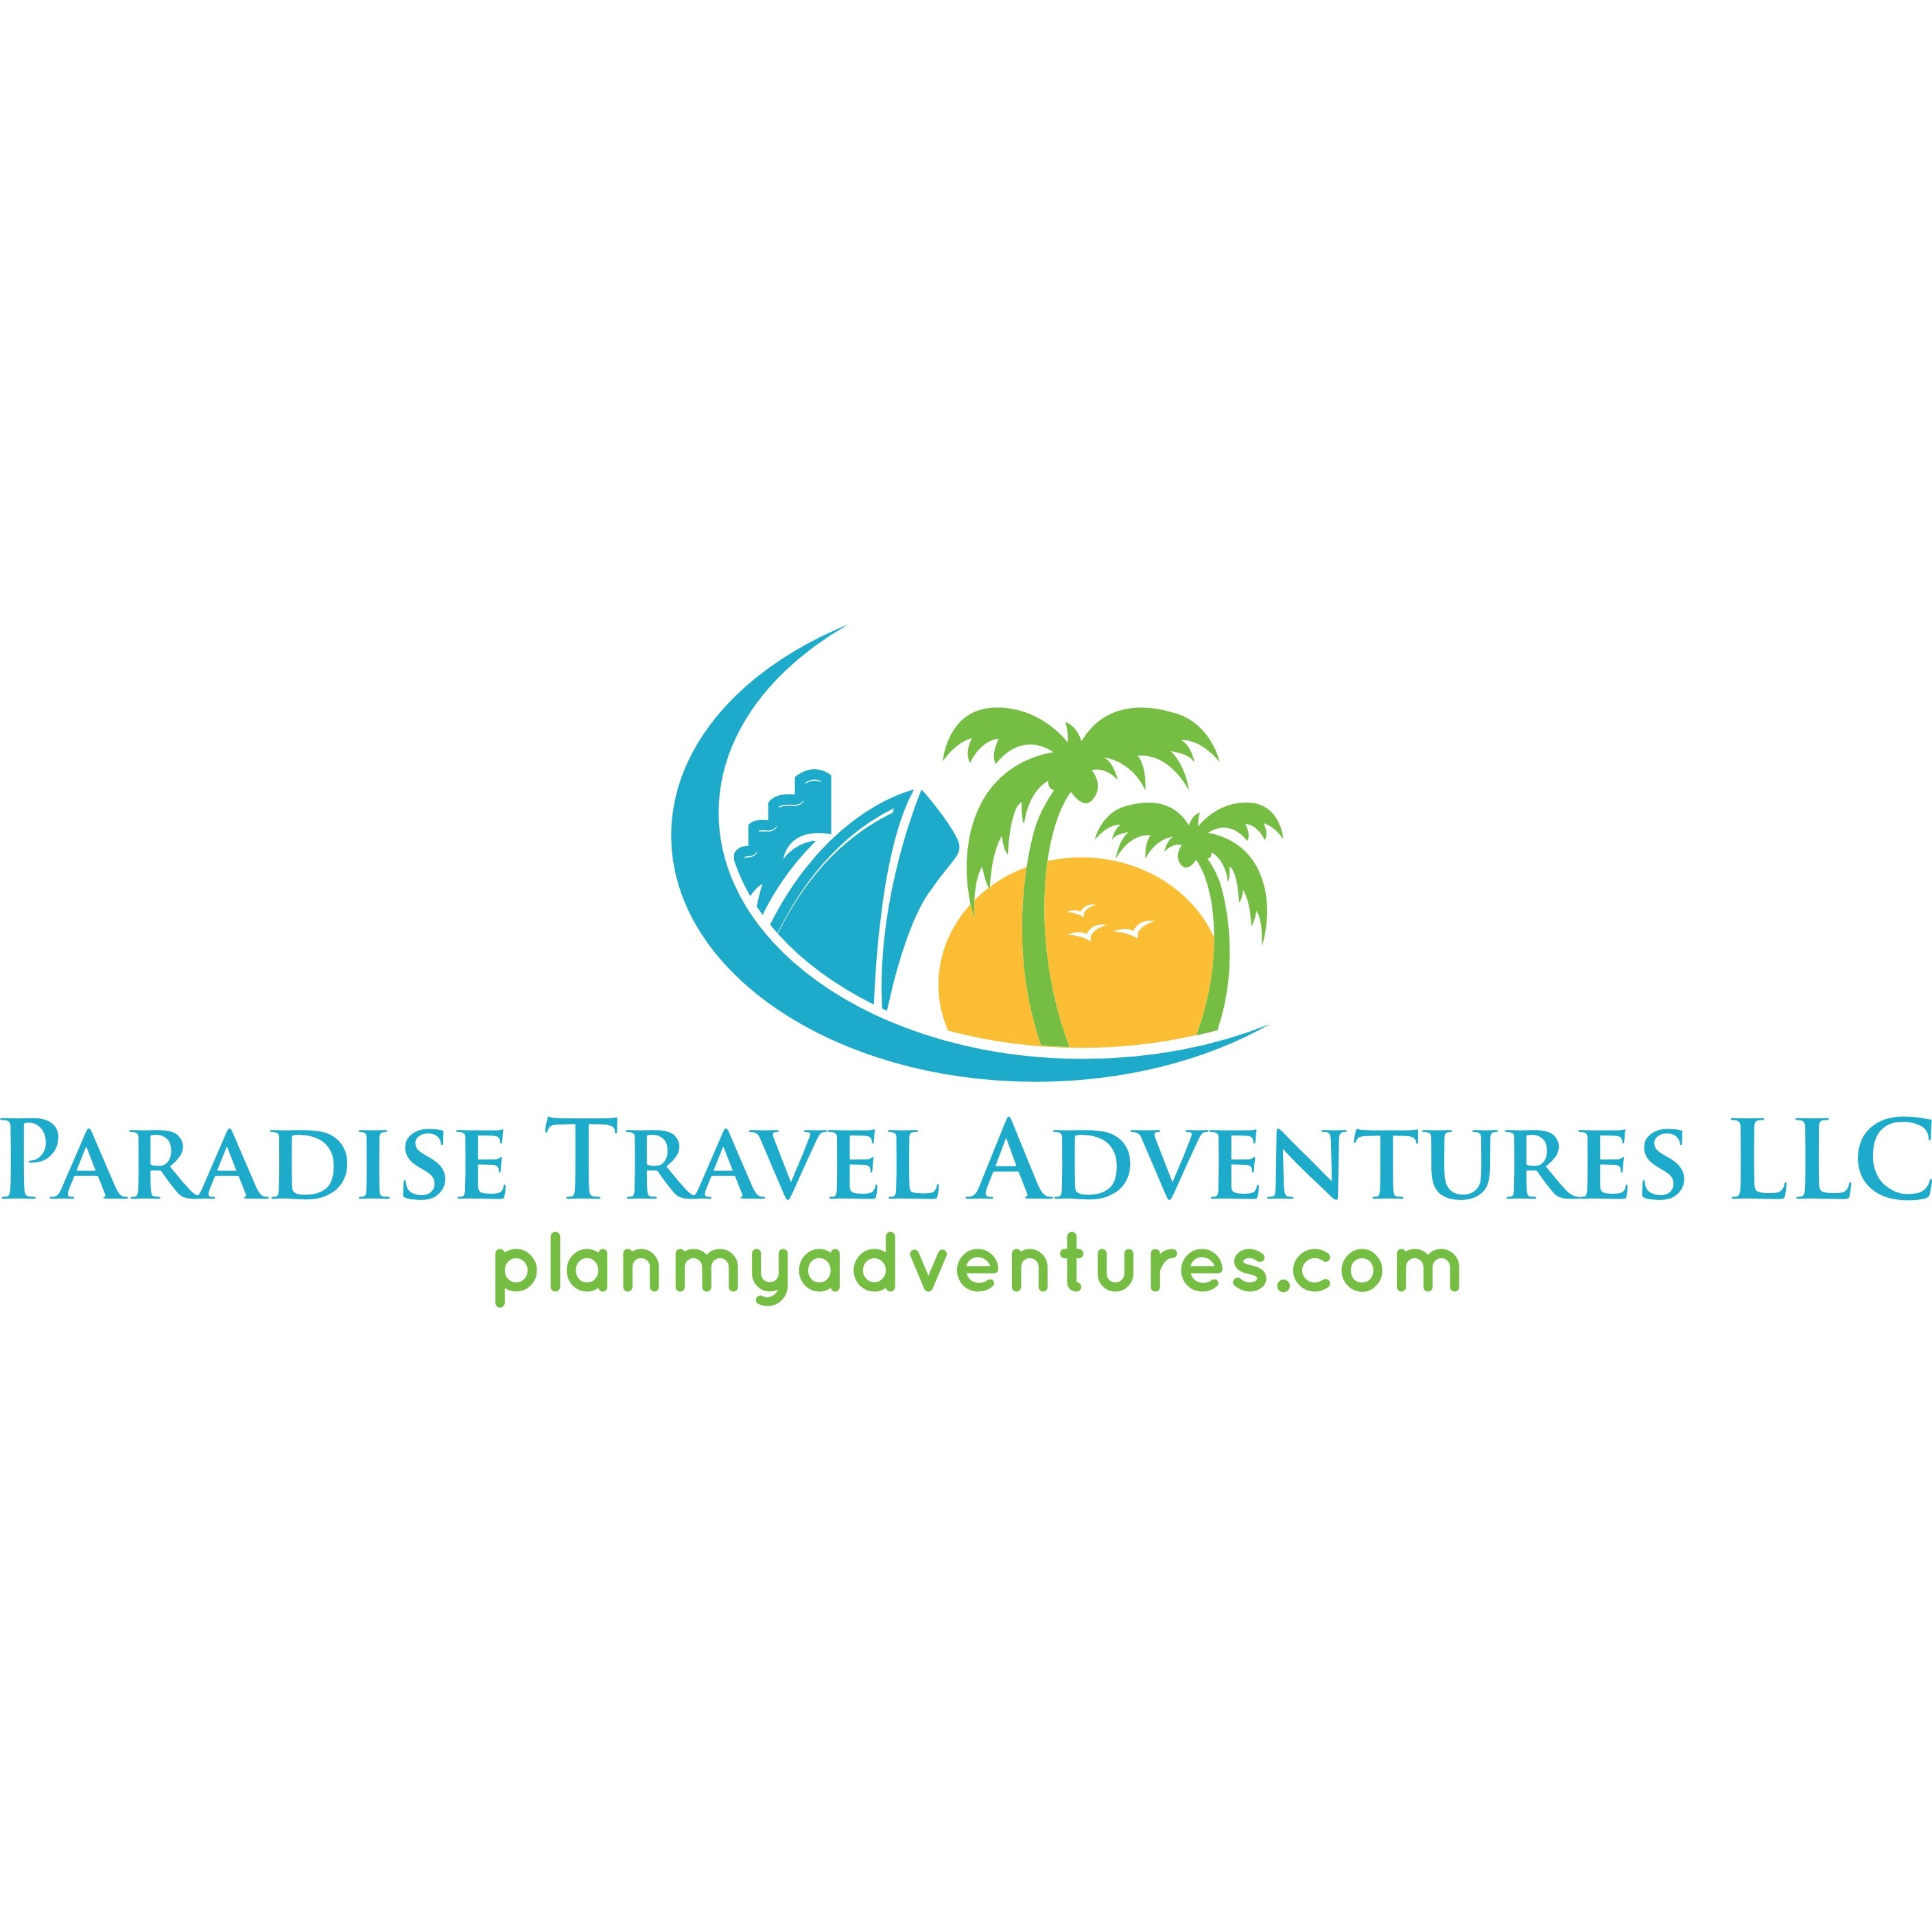 Paradise Travel Adventures, LLC